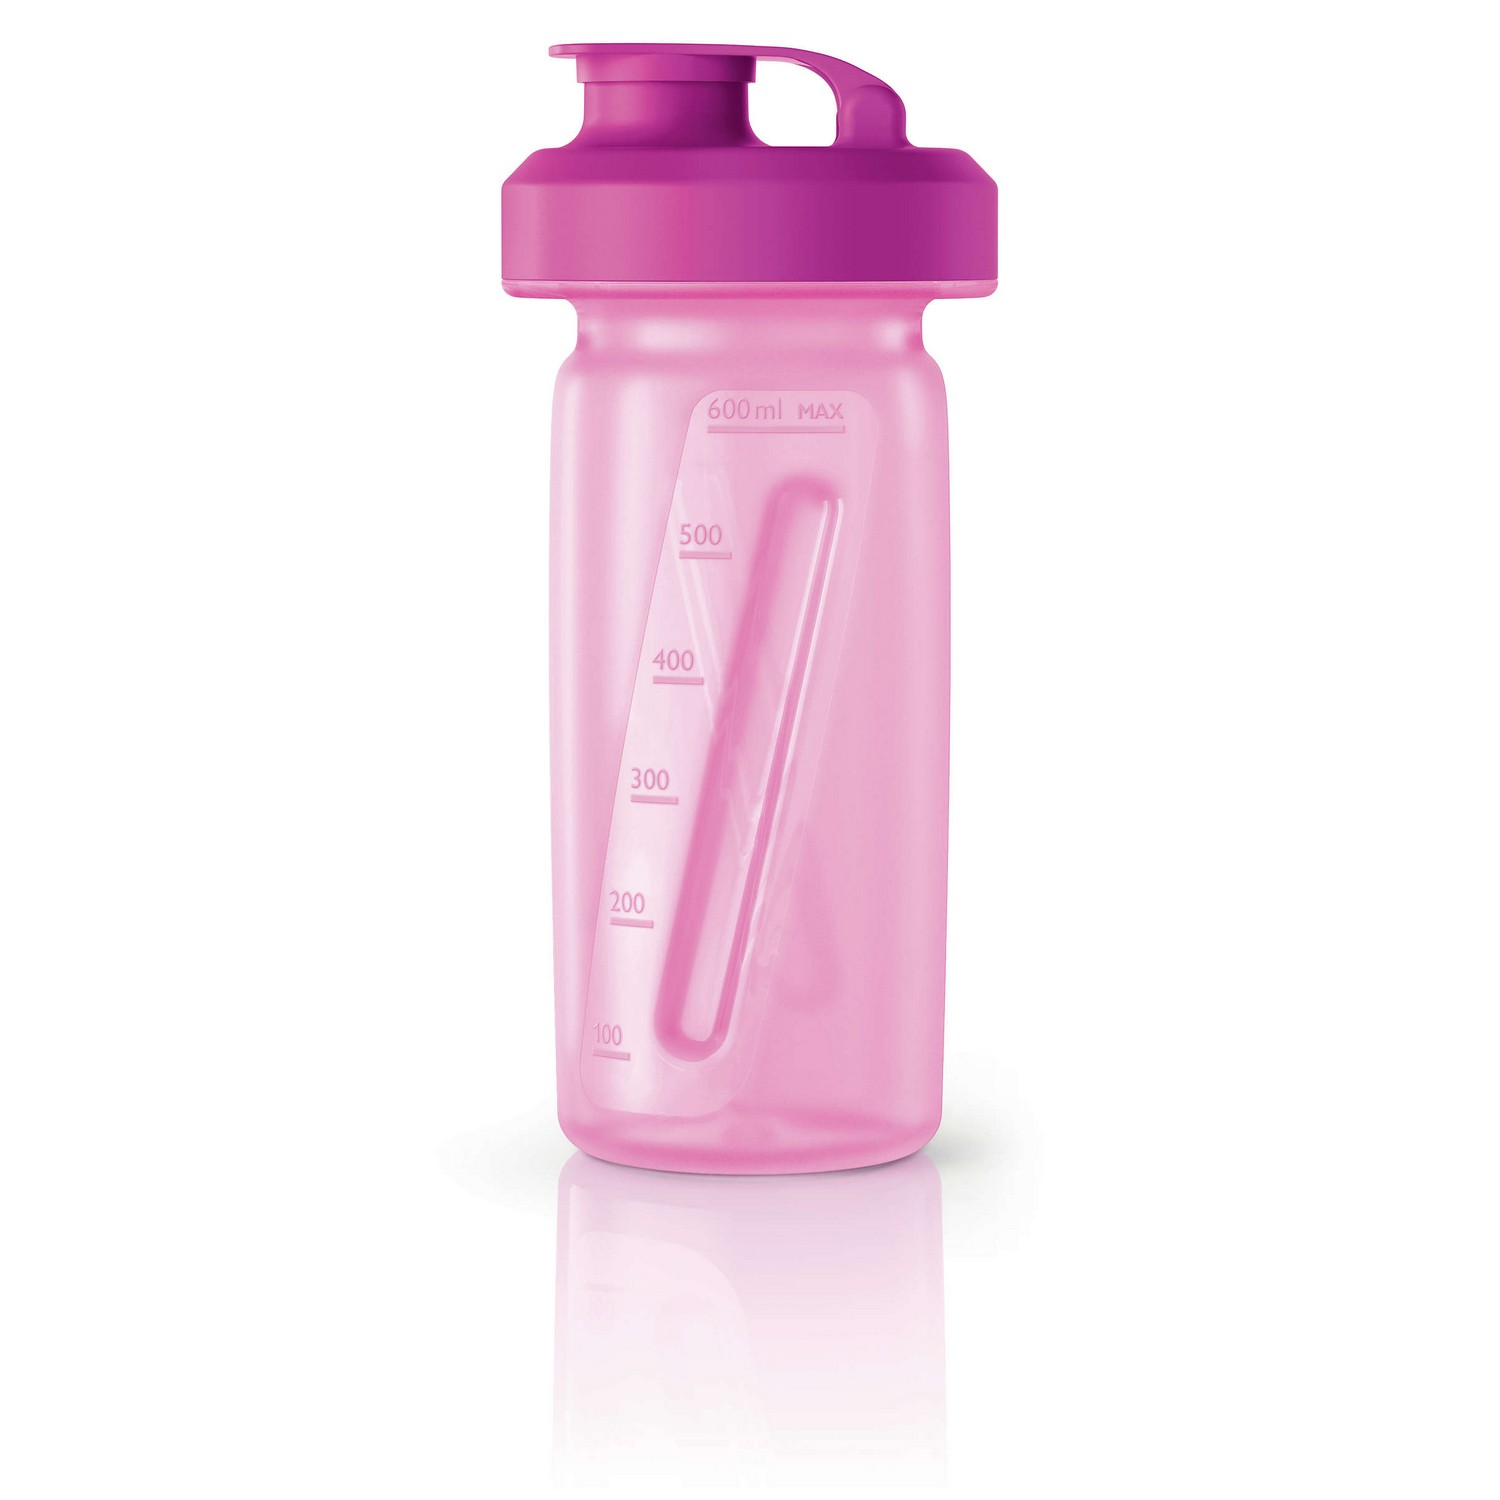 "Philips HR2989/00 Flasche pink ""ON THE GO"" FLASCHE FÜR SMOOTHIES"